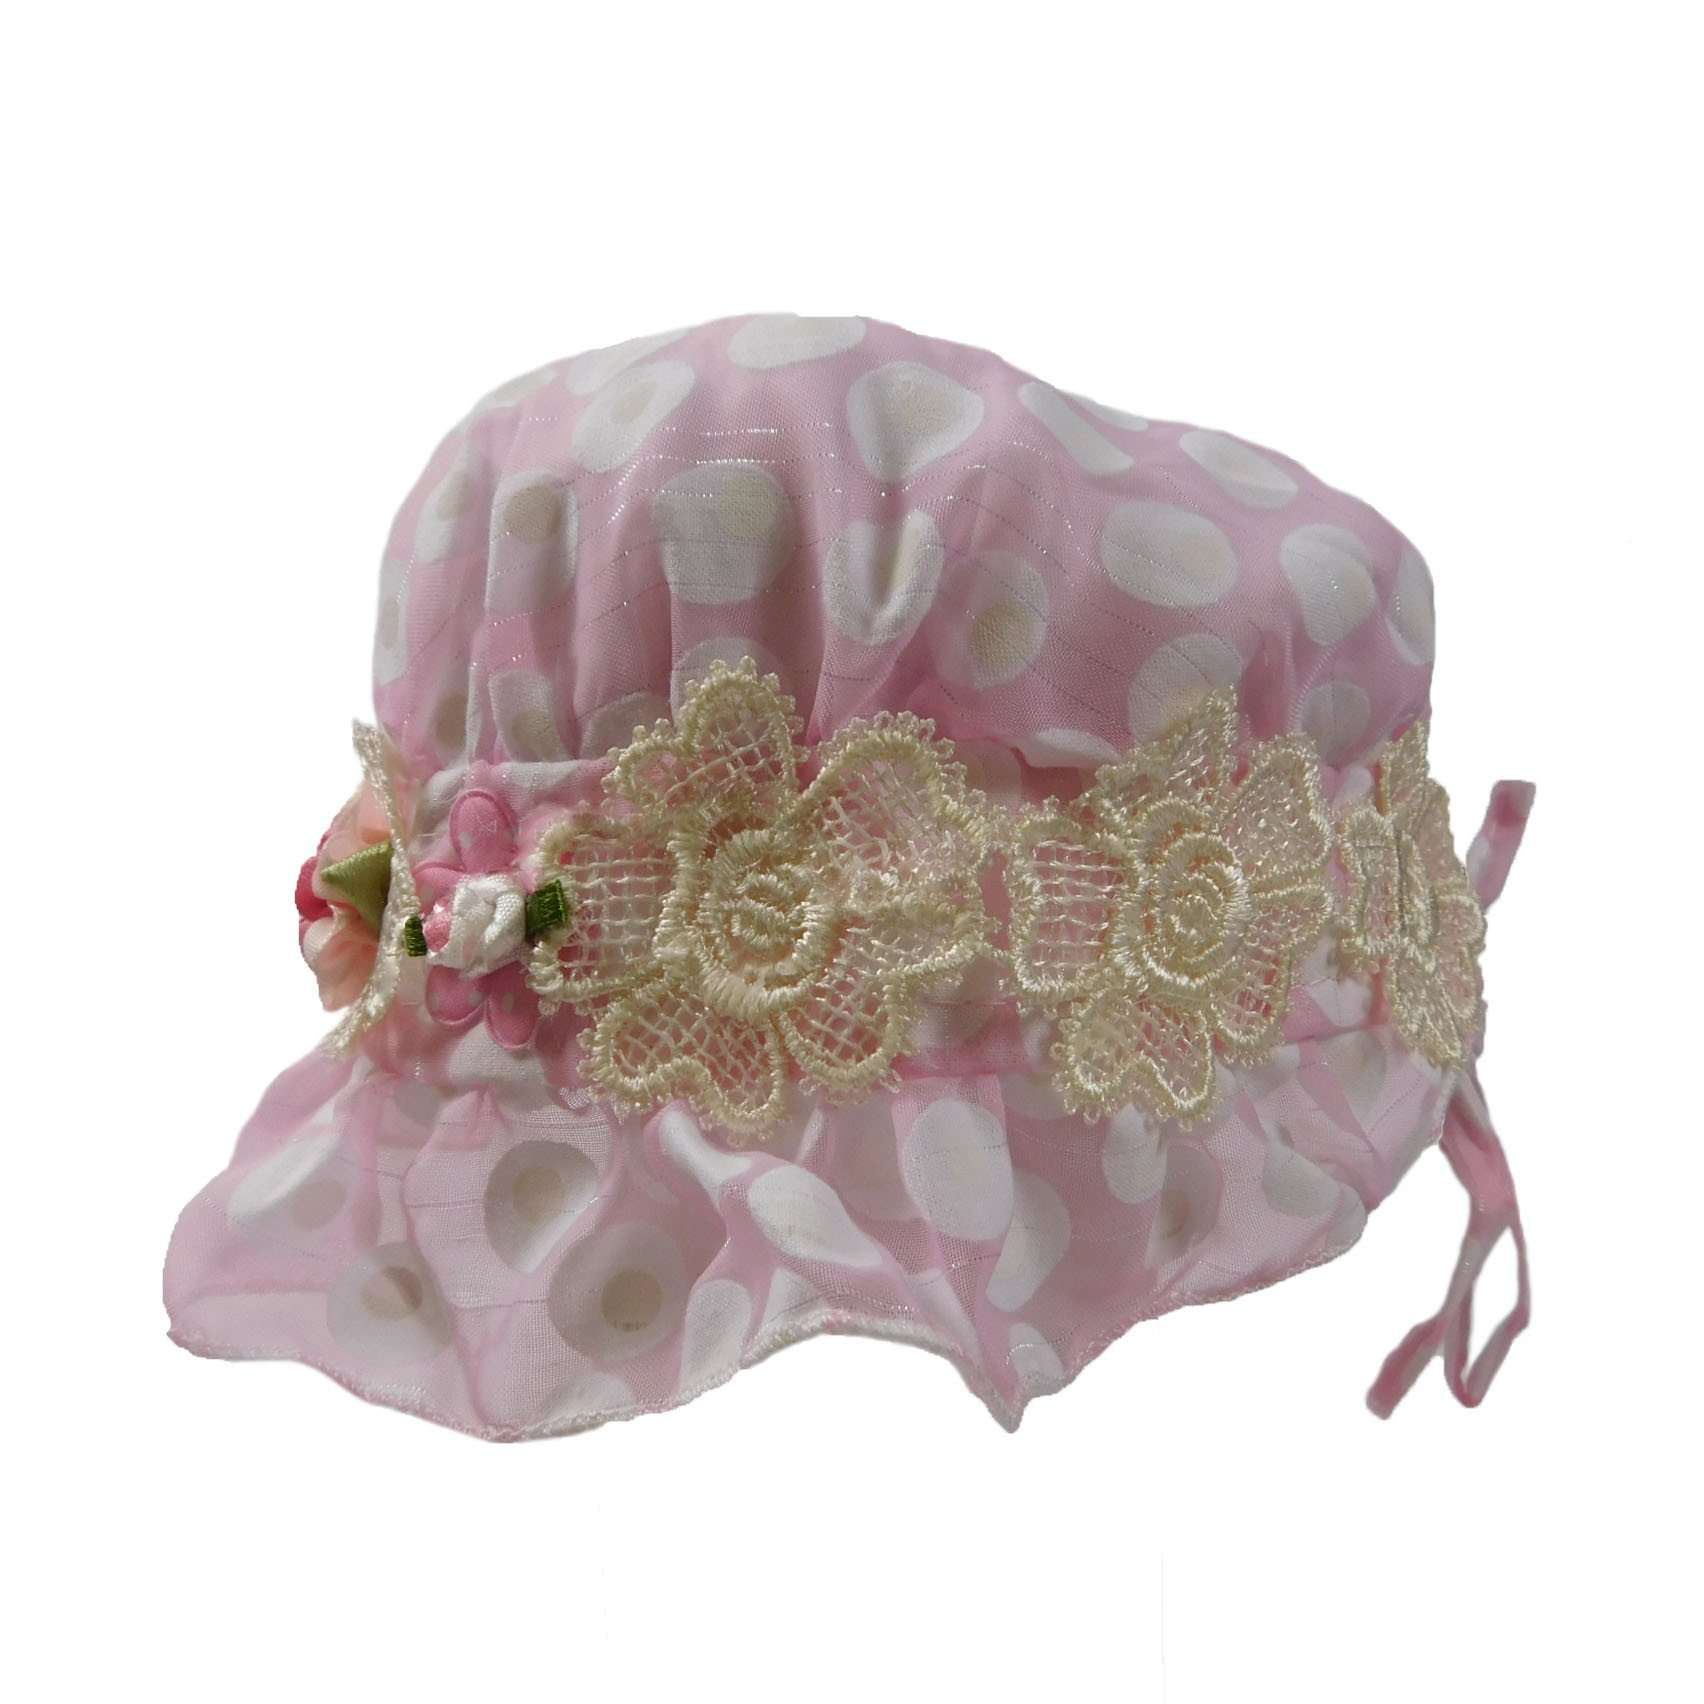 Polka Dot Bonnet with Lace and Silk Decoration - SetarTrading Hats